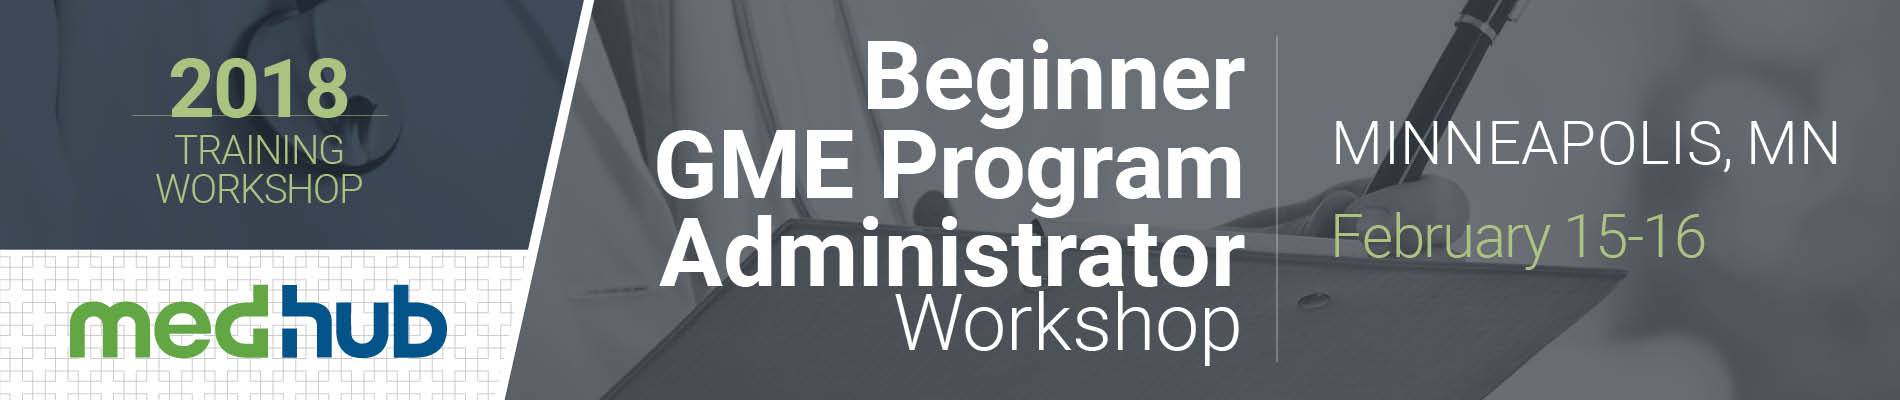 MedHub New GME Program Administrator Workshop (February 15-16)